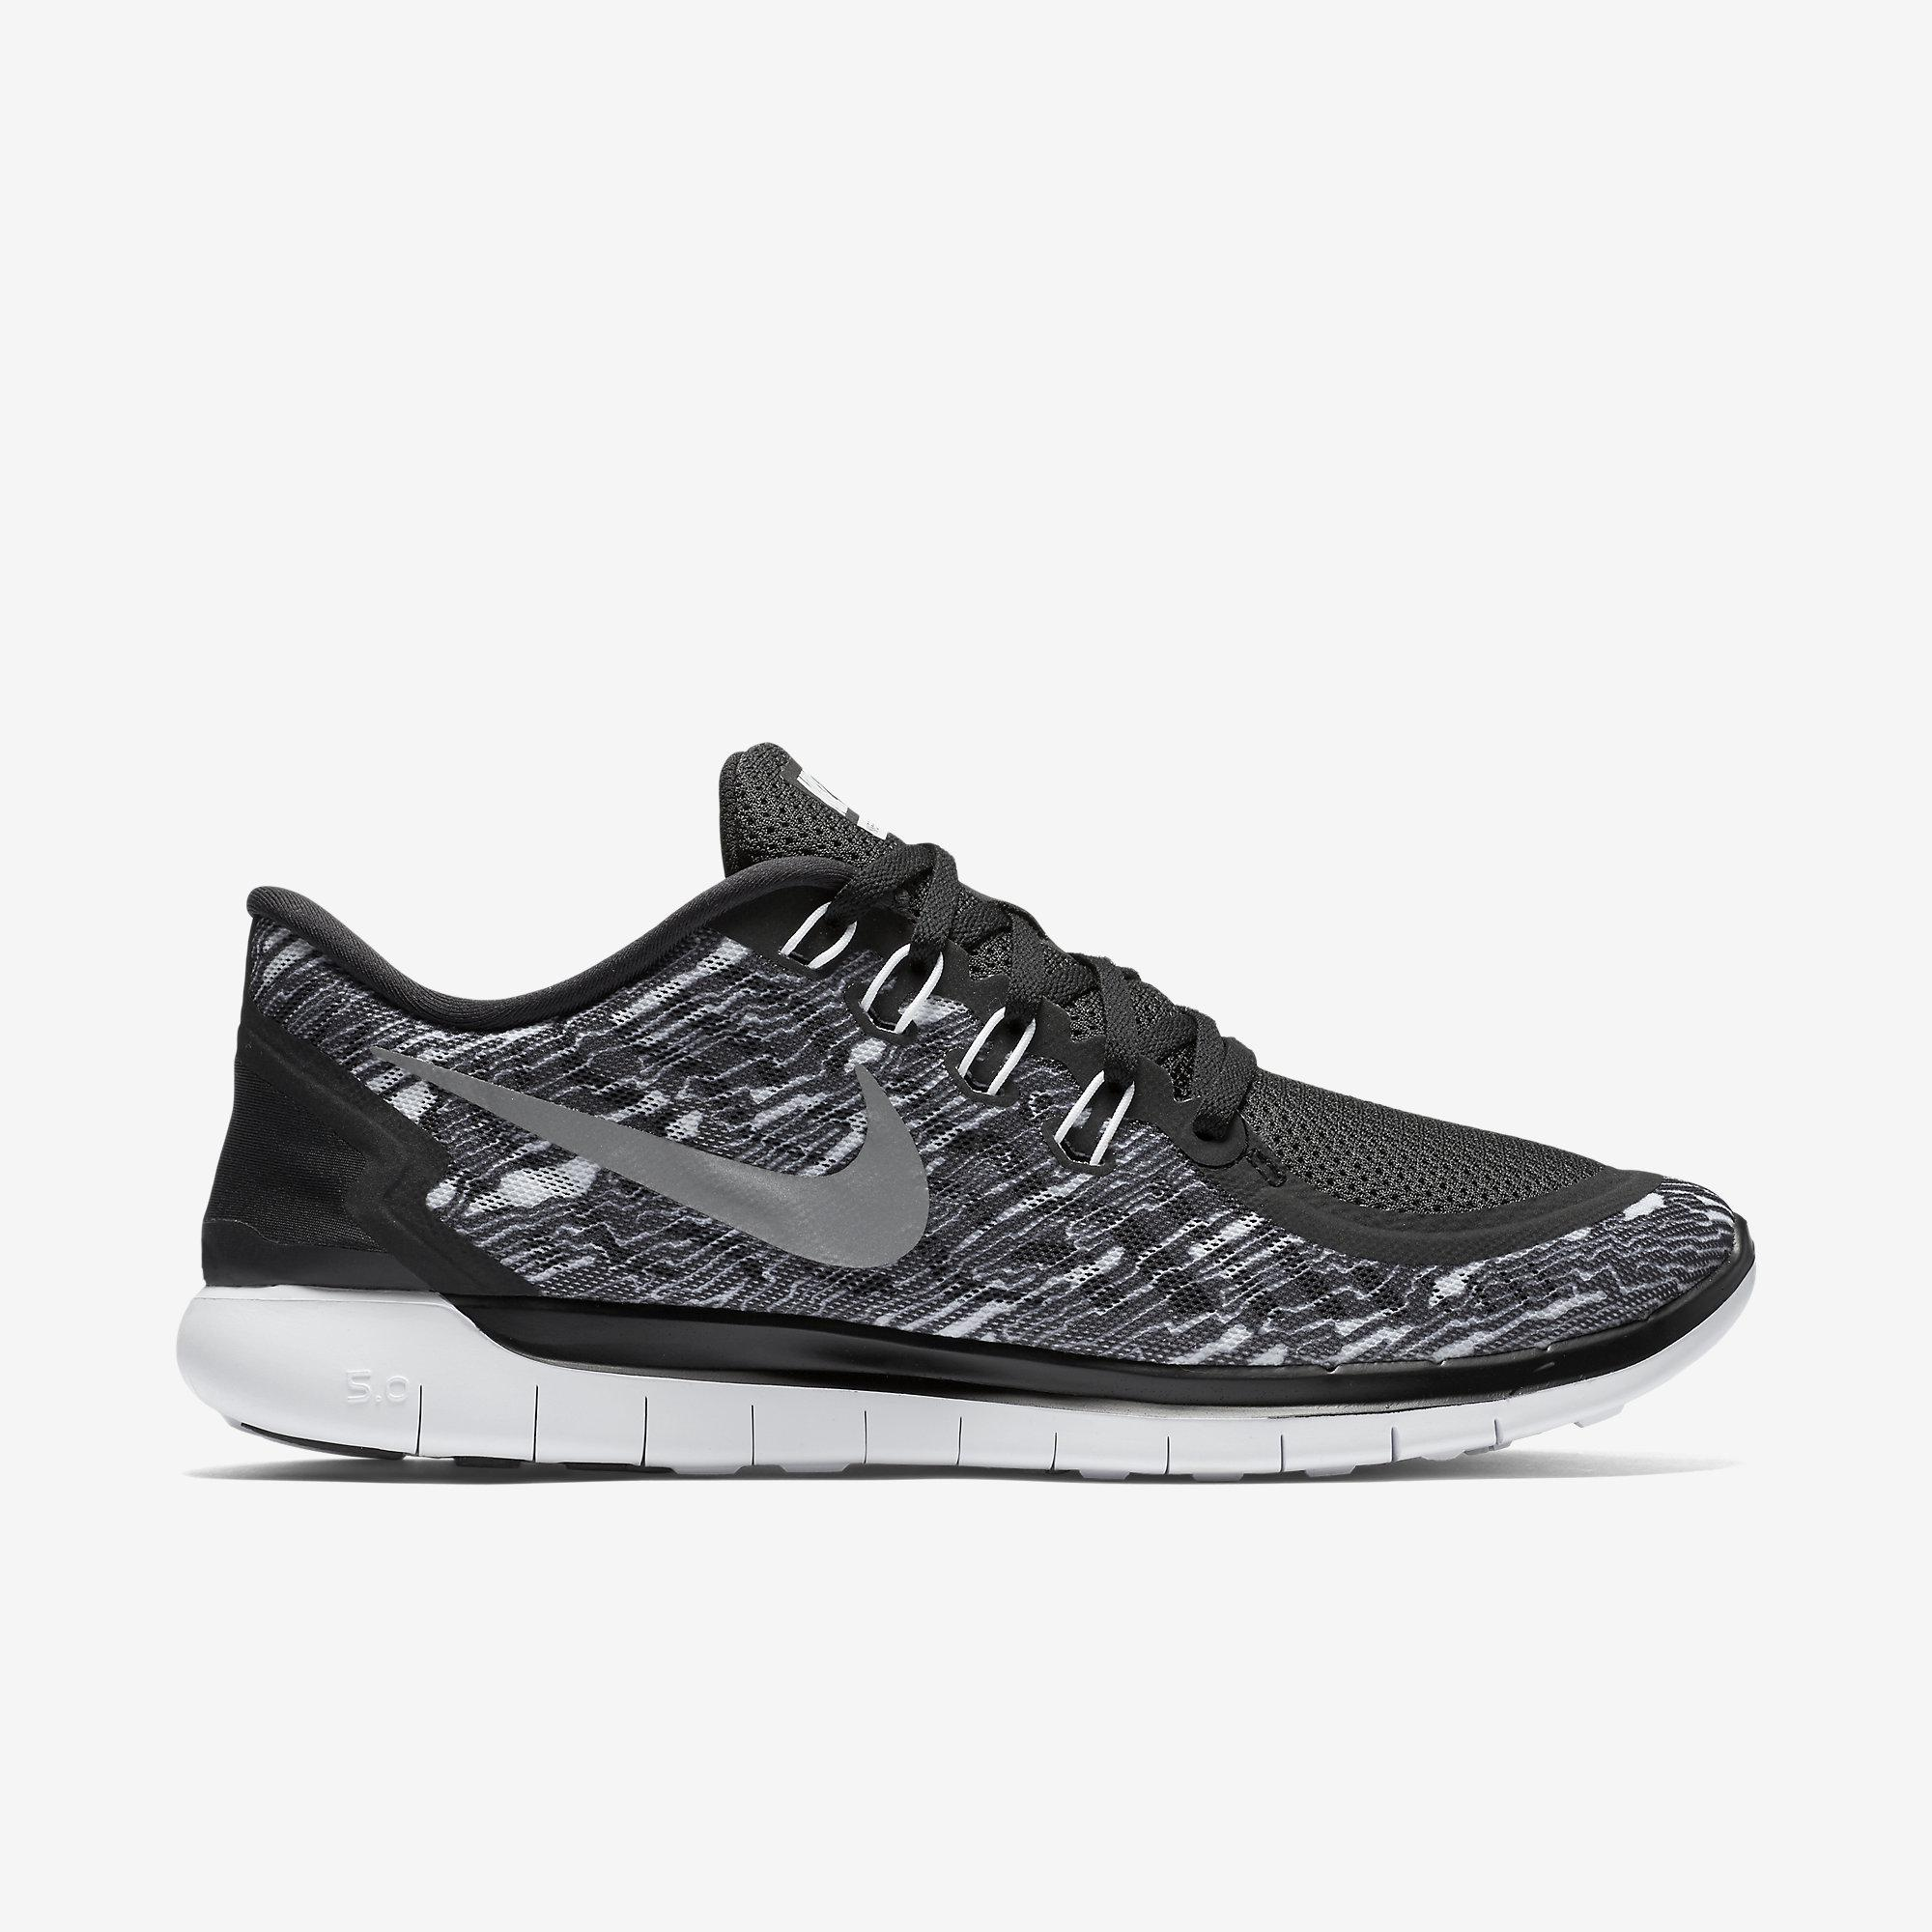 b18c30295 Nike Mens Free 5.0 Print Running Shoes - Black White - Tennisnuts.com